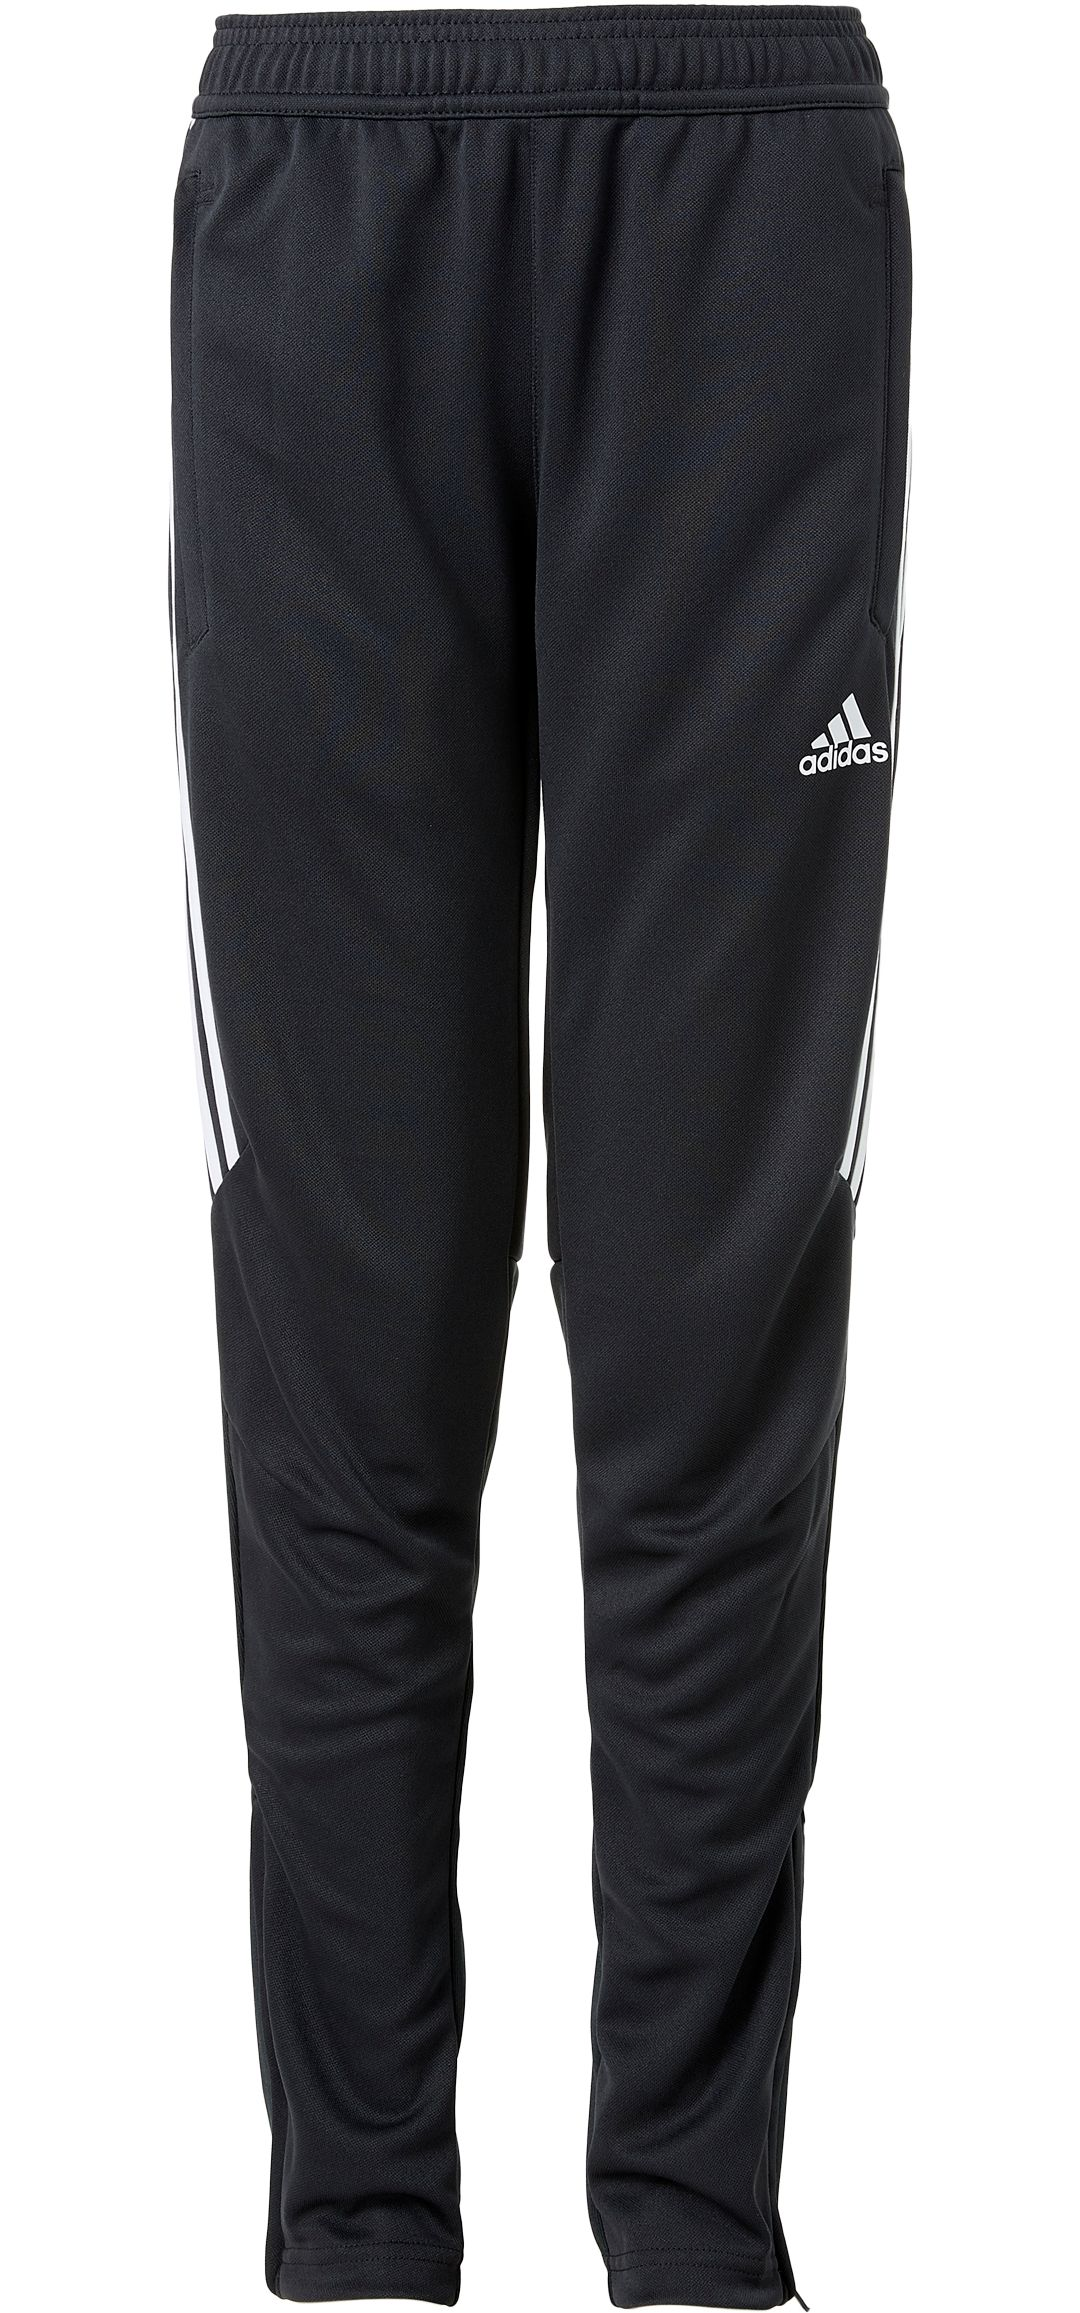 48f0fa974 adidas Youth Tiro 17 Soccer Training Pants | DICK'S Sporting Goods